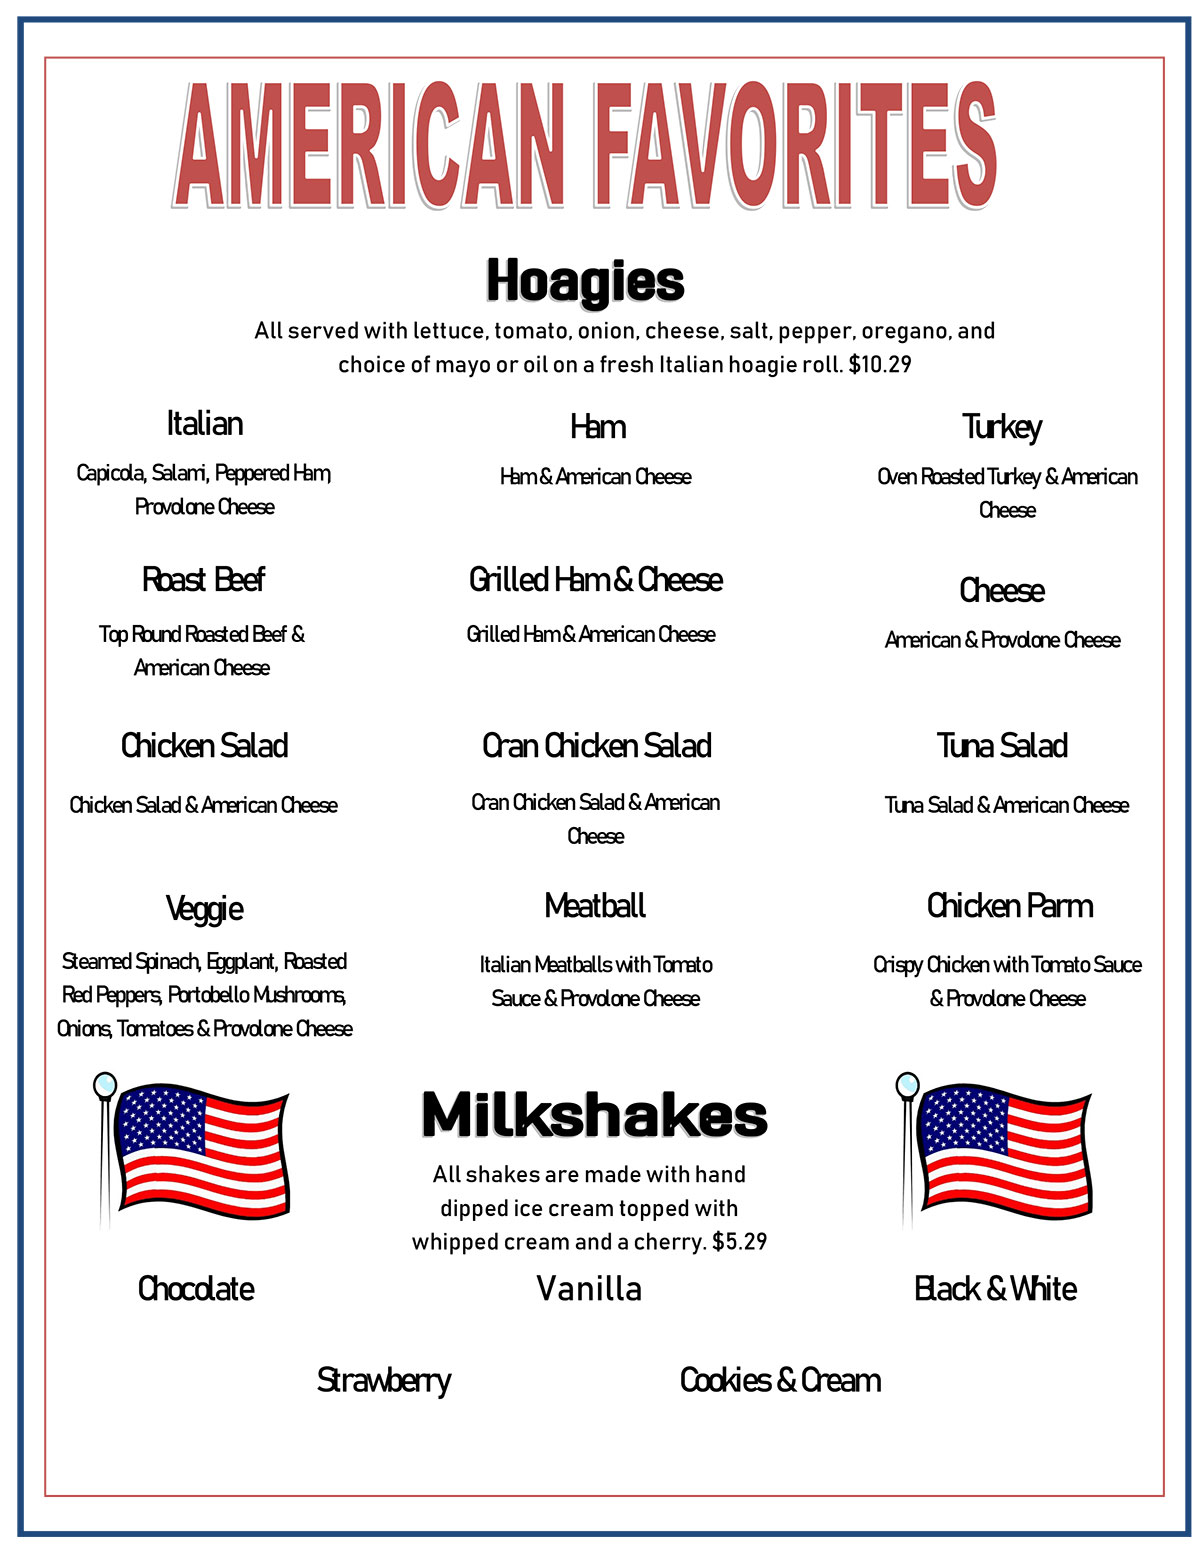 American Favorites Menu